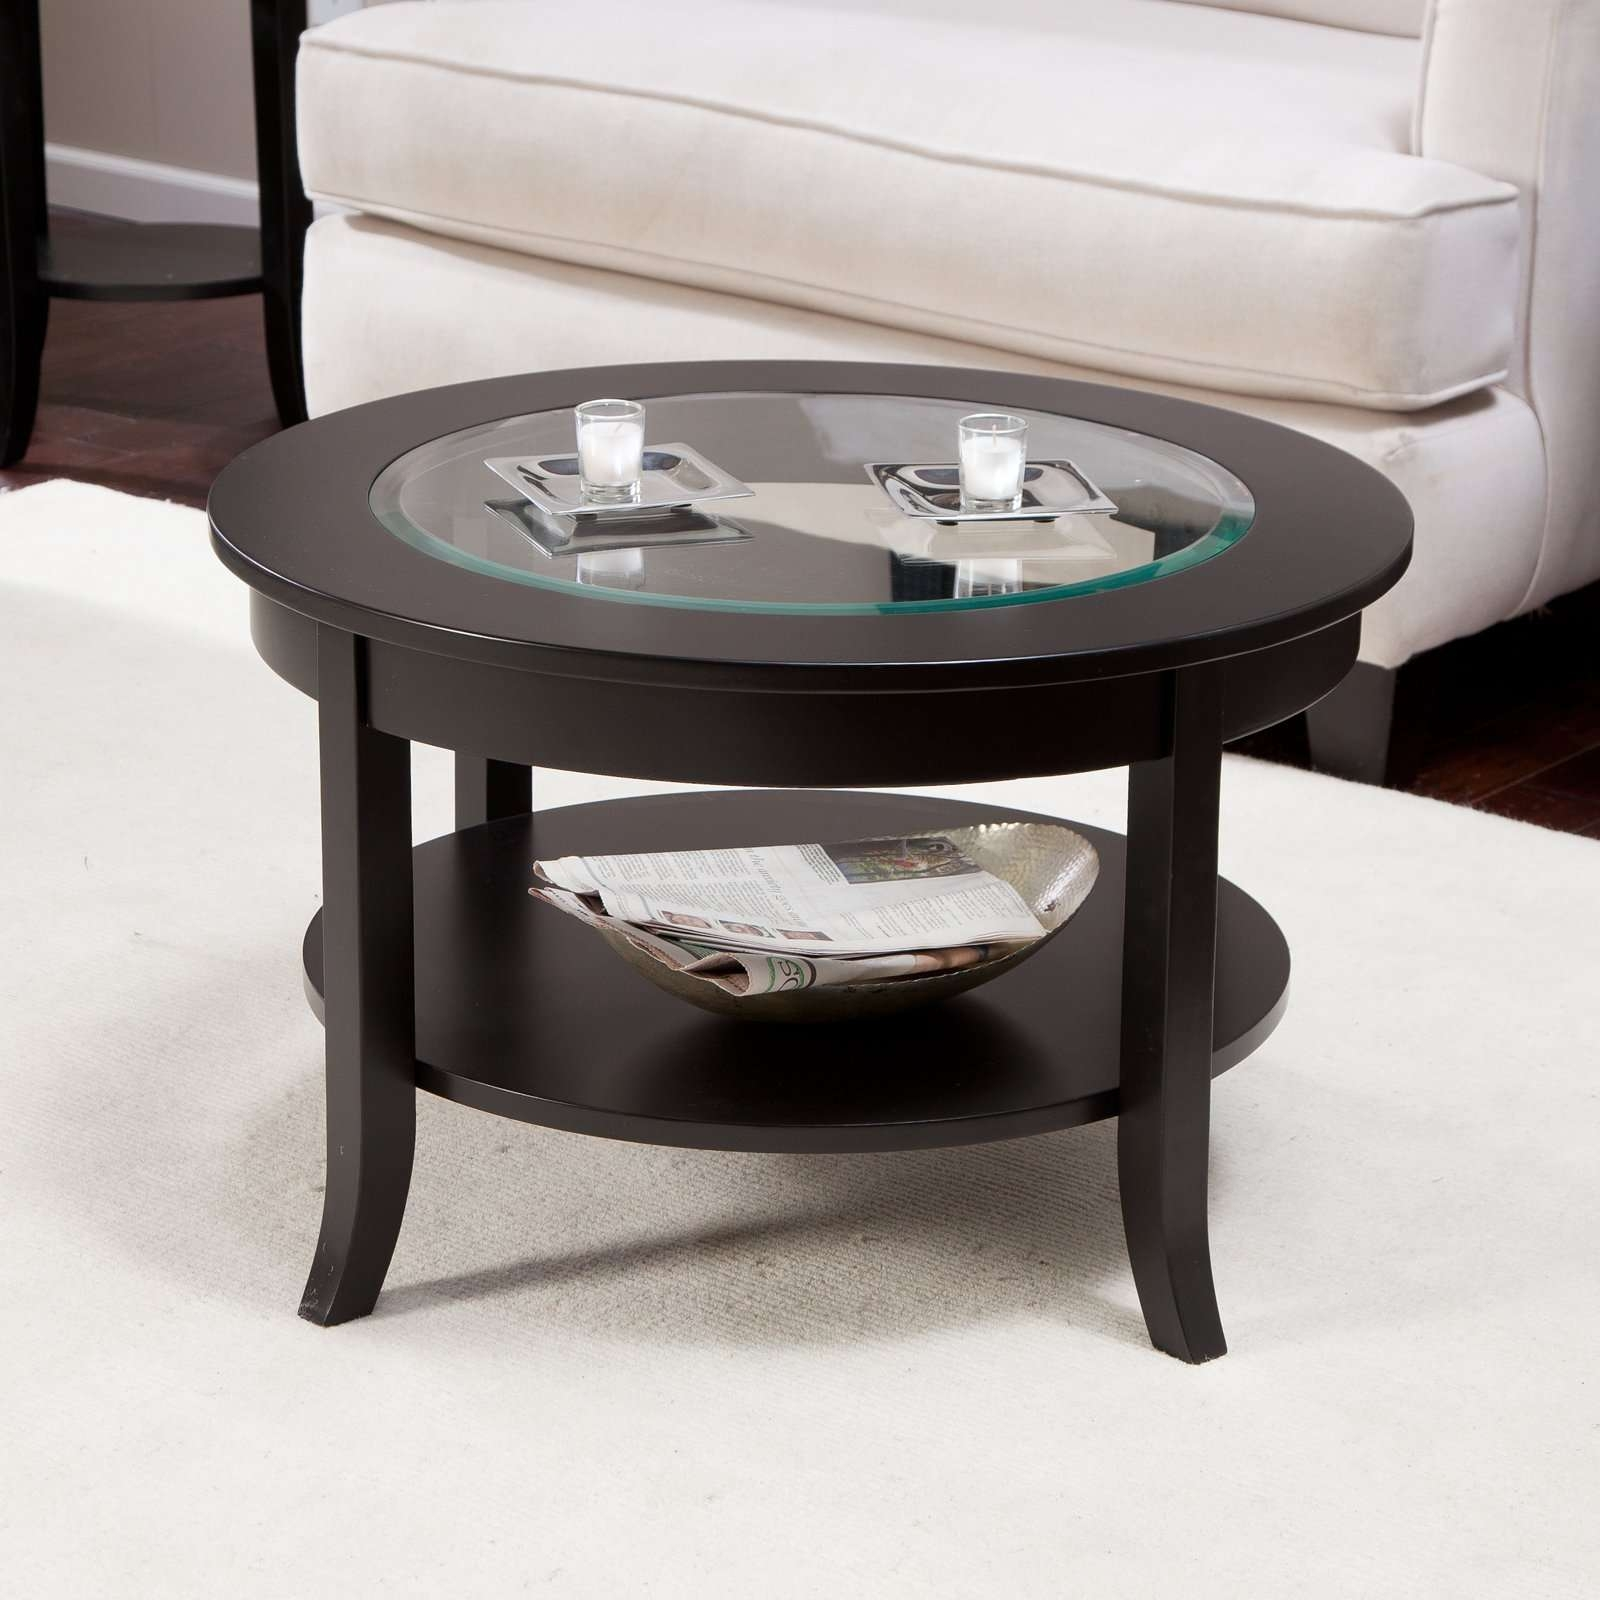 Fashionable Oval Black Glass Coffee Tables Throughout Coffee Table : Marvelous Ottoman Coffee Table Small Coffee Tables (View 10 of 20)